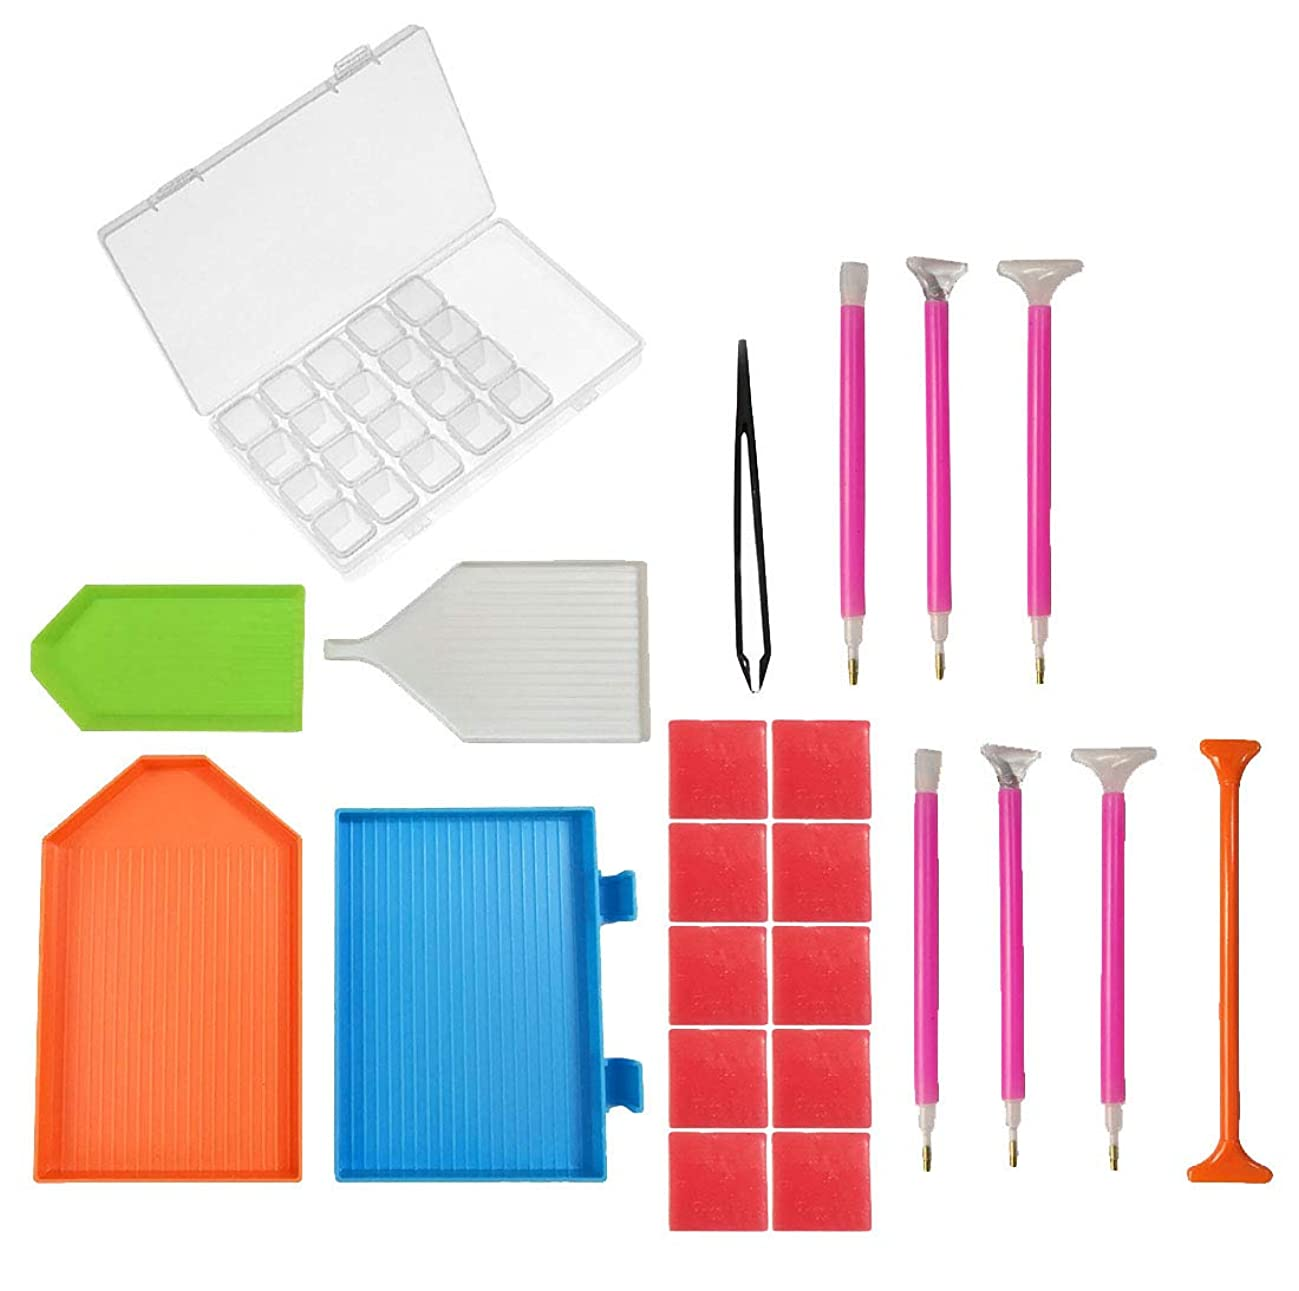 5D DIY Diamond Painting Tools,Diamond Painting Accessories Include Stitch Pen,Glue,Plastic Tray,Tweezers and 28 Slots Embroidery Box